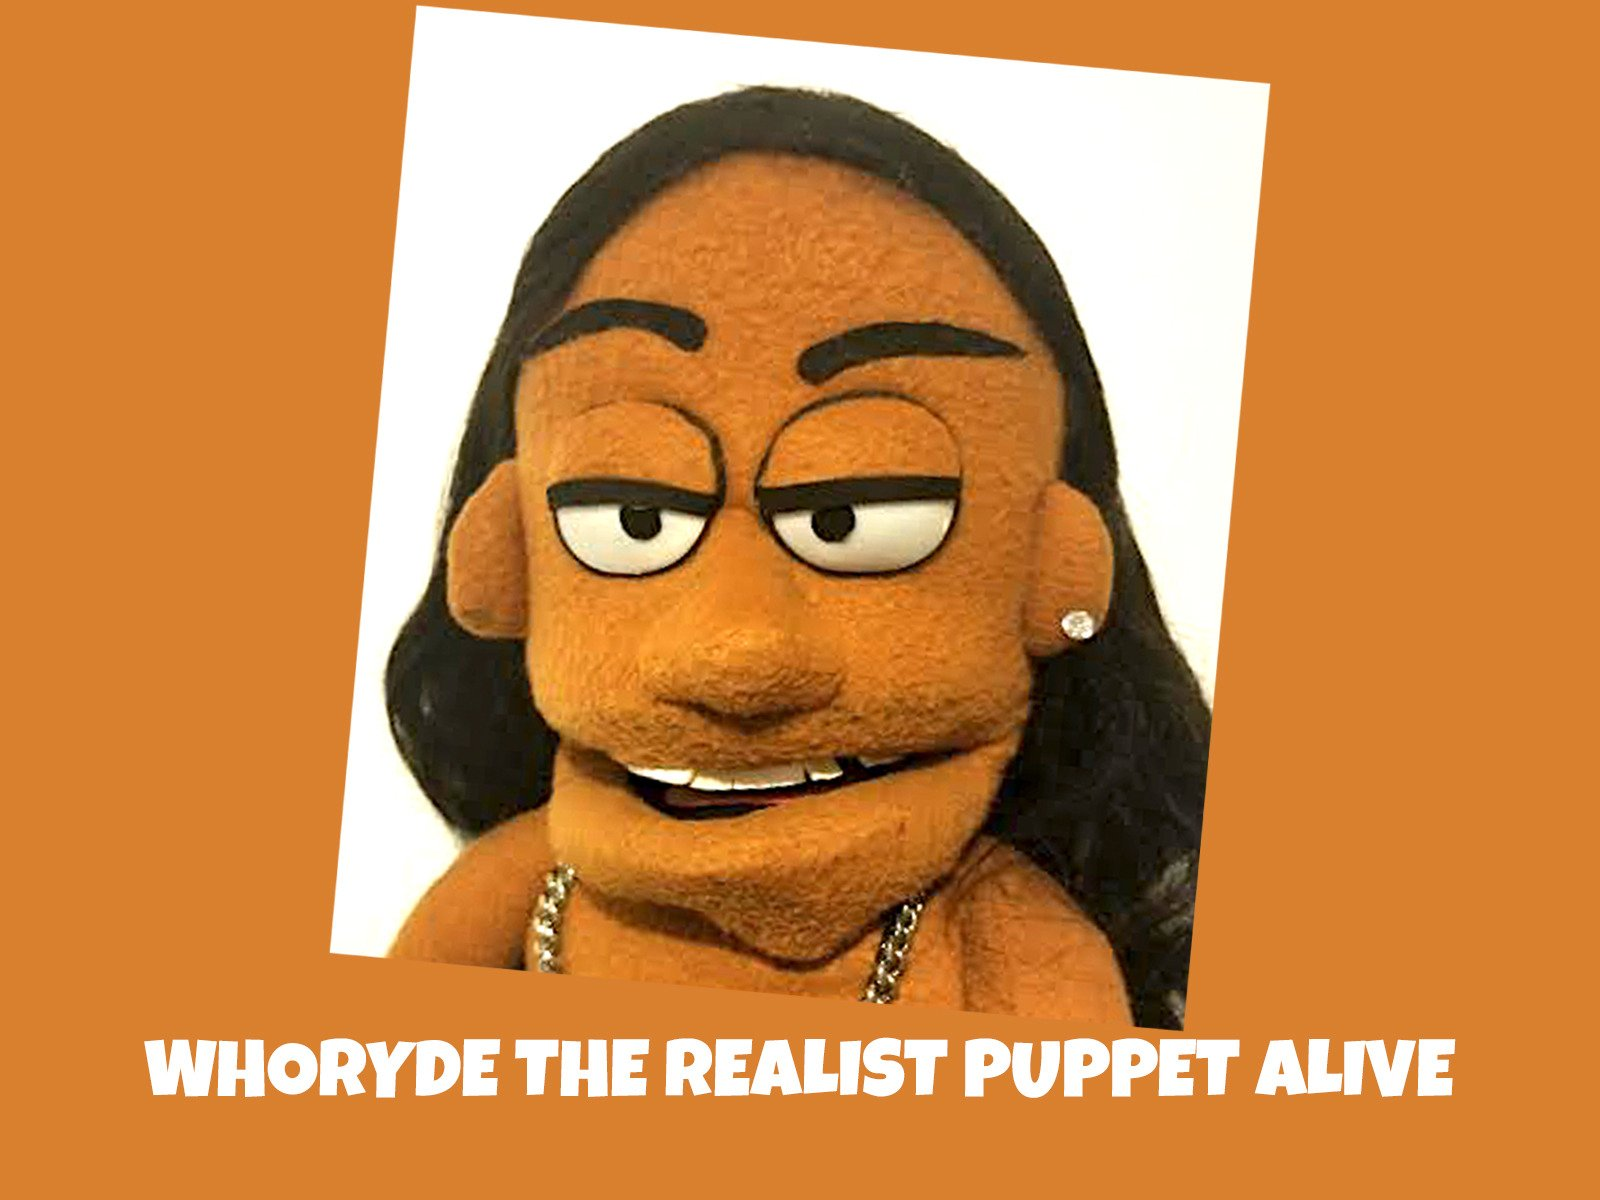 WhoRyde The Realist Puppet Alive